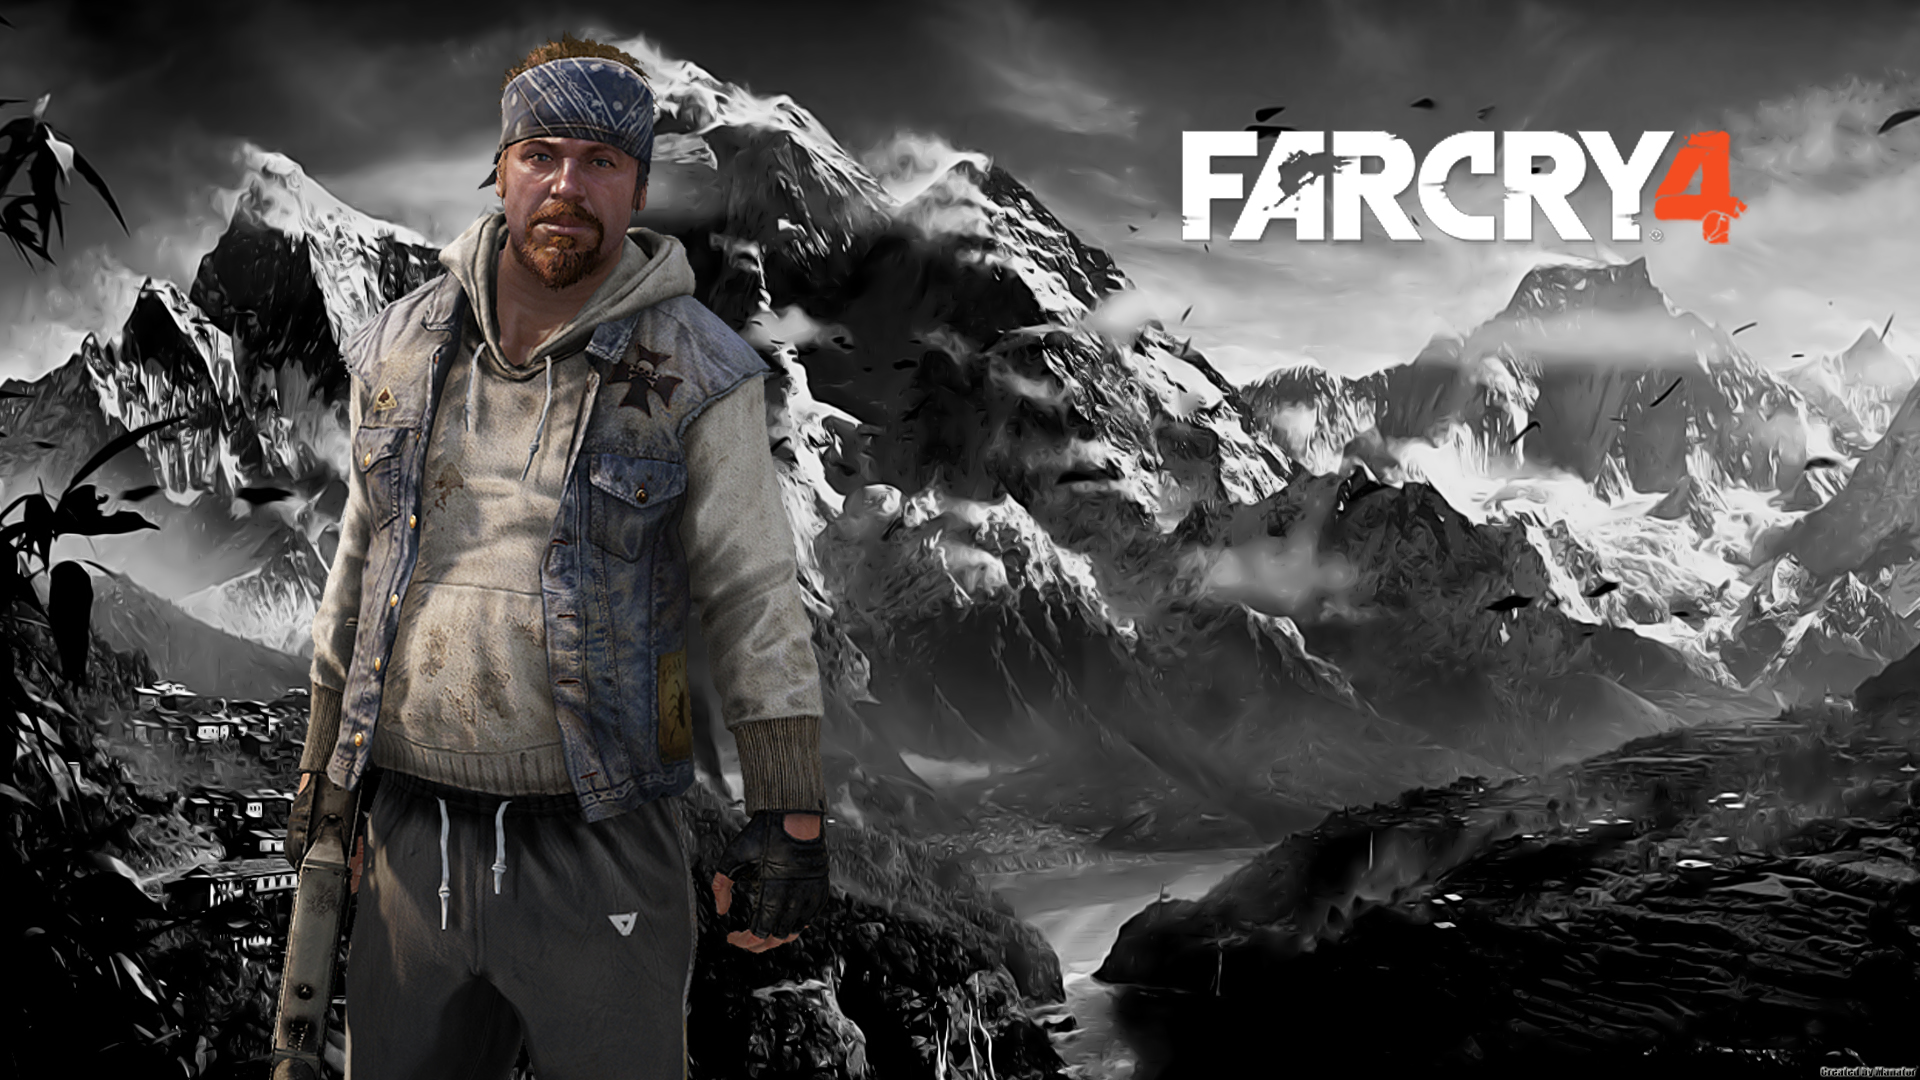 Far Cry 4 Wallpapers Hd Desktop And Mobile Backgrounds: Far Cry 4 Wallpaper Free Downloads #9026 Wallpaper